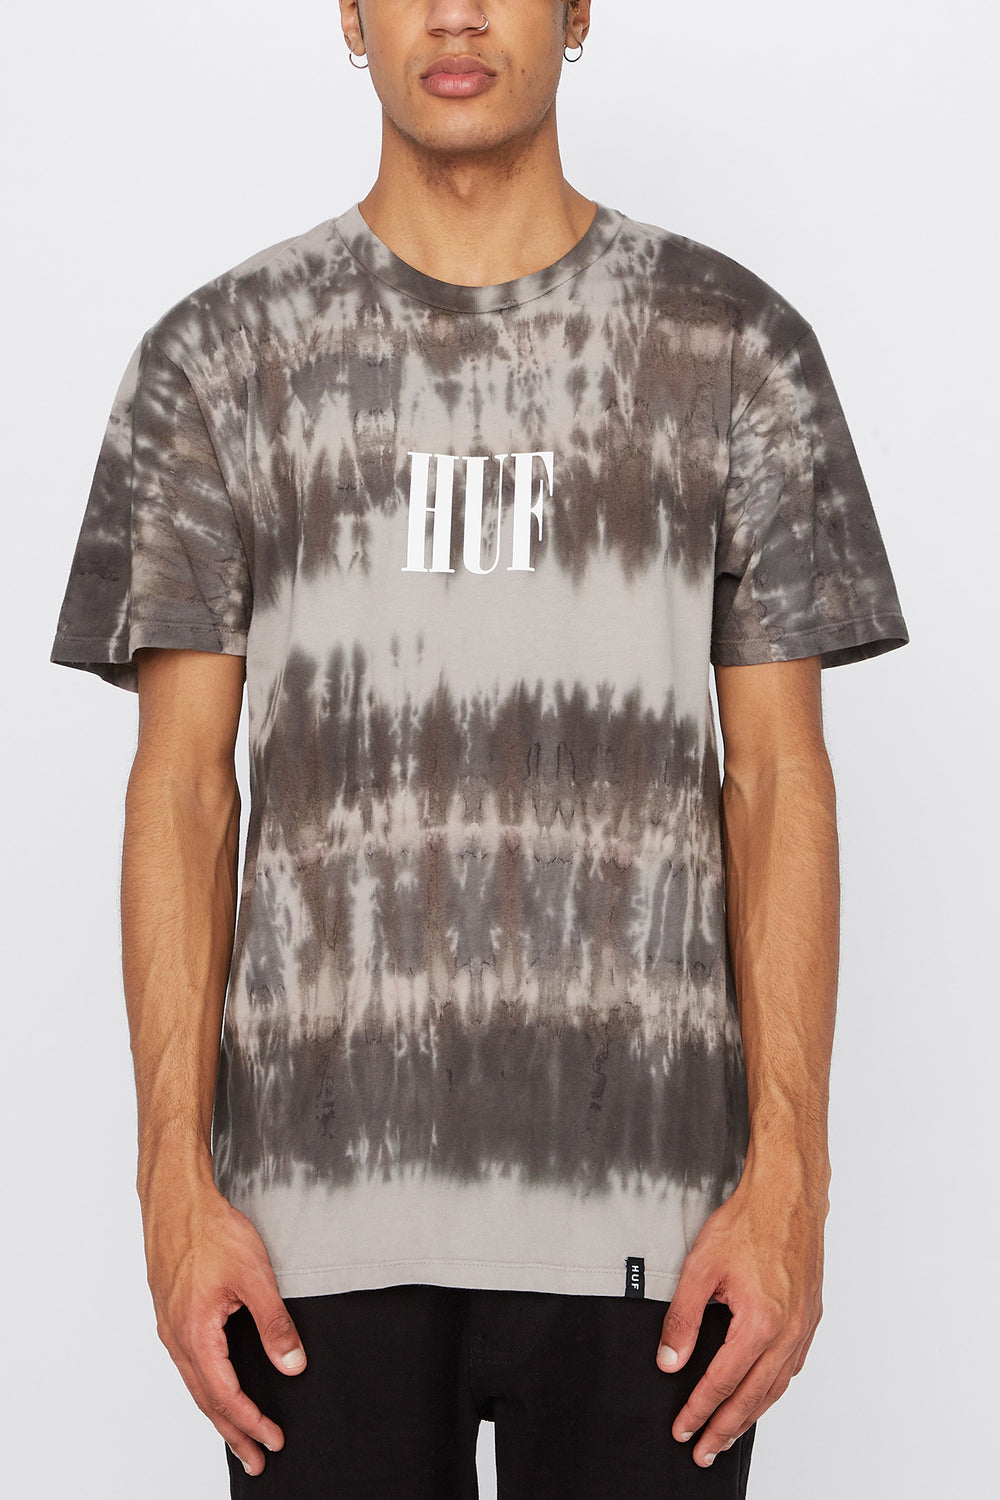 HUF Mens Grey Tie-Dye T-Shirt Black